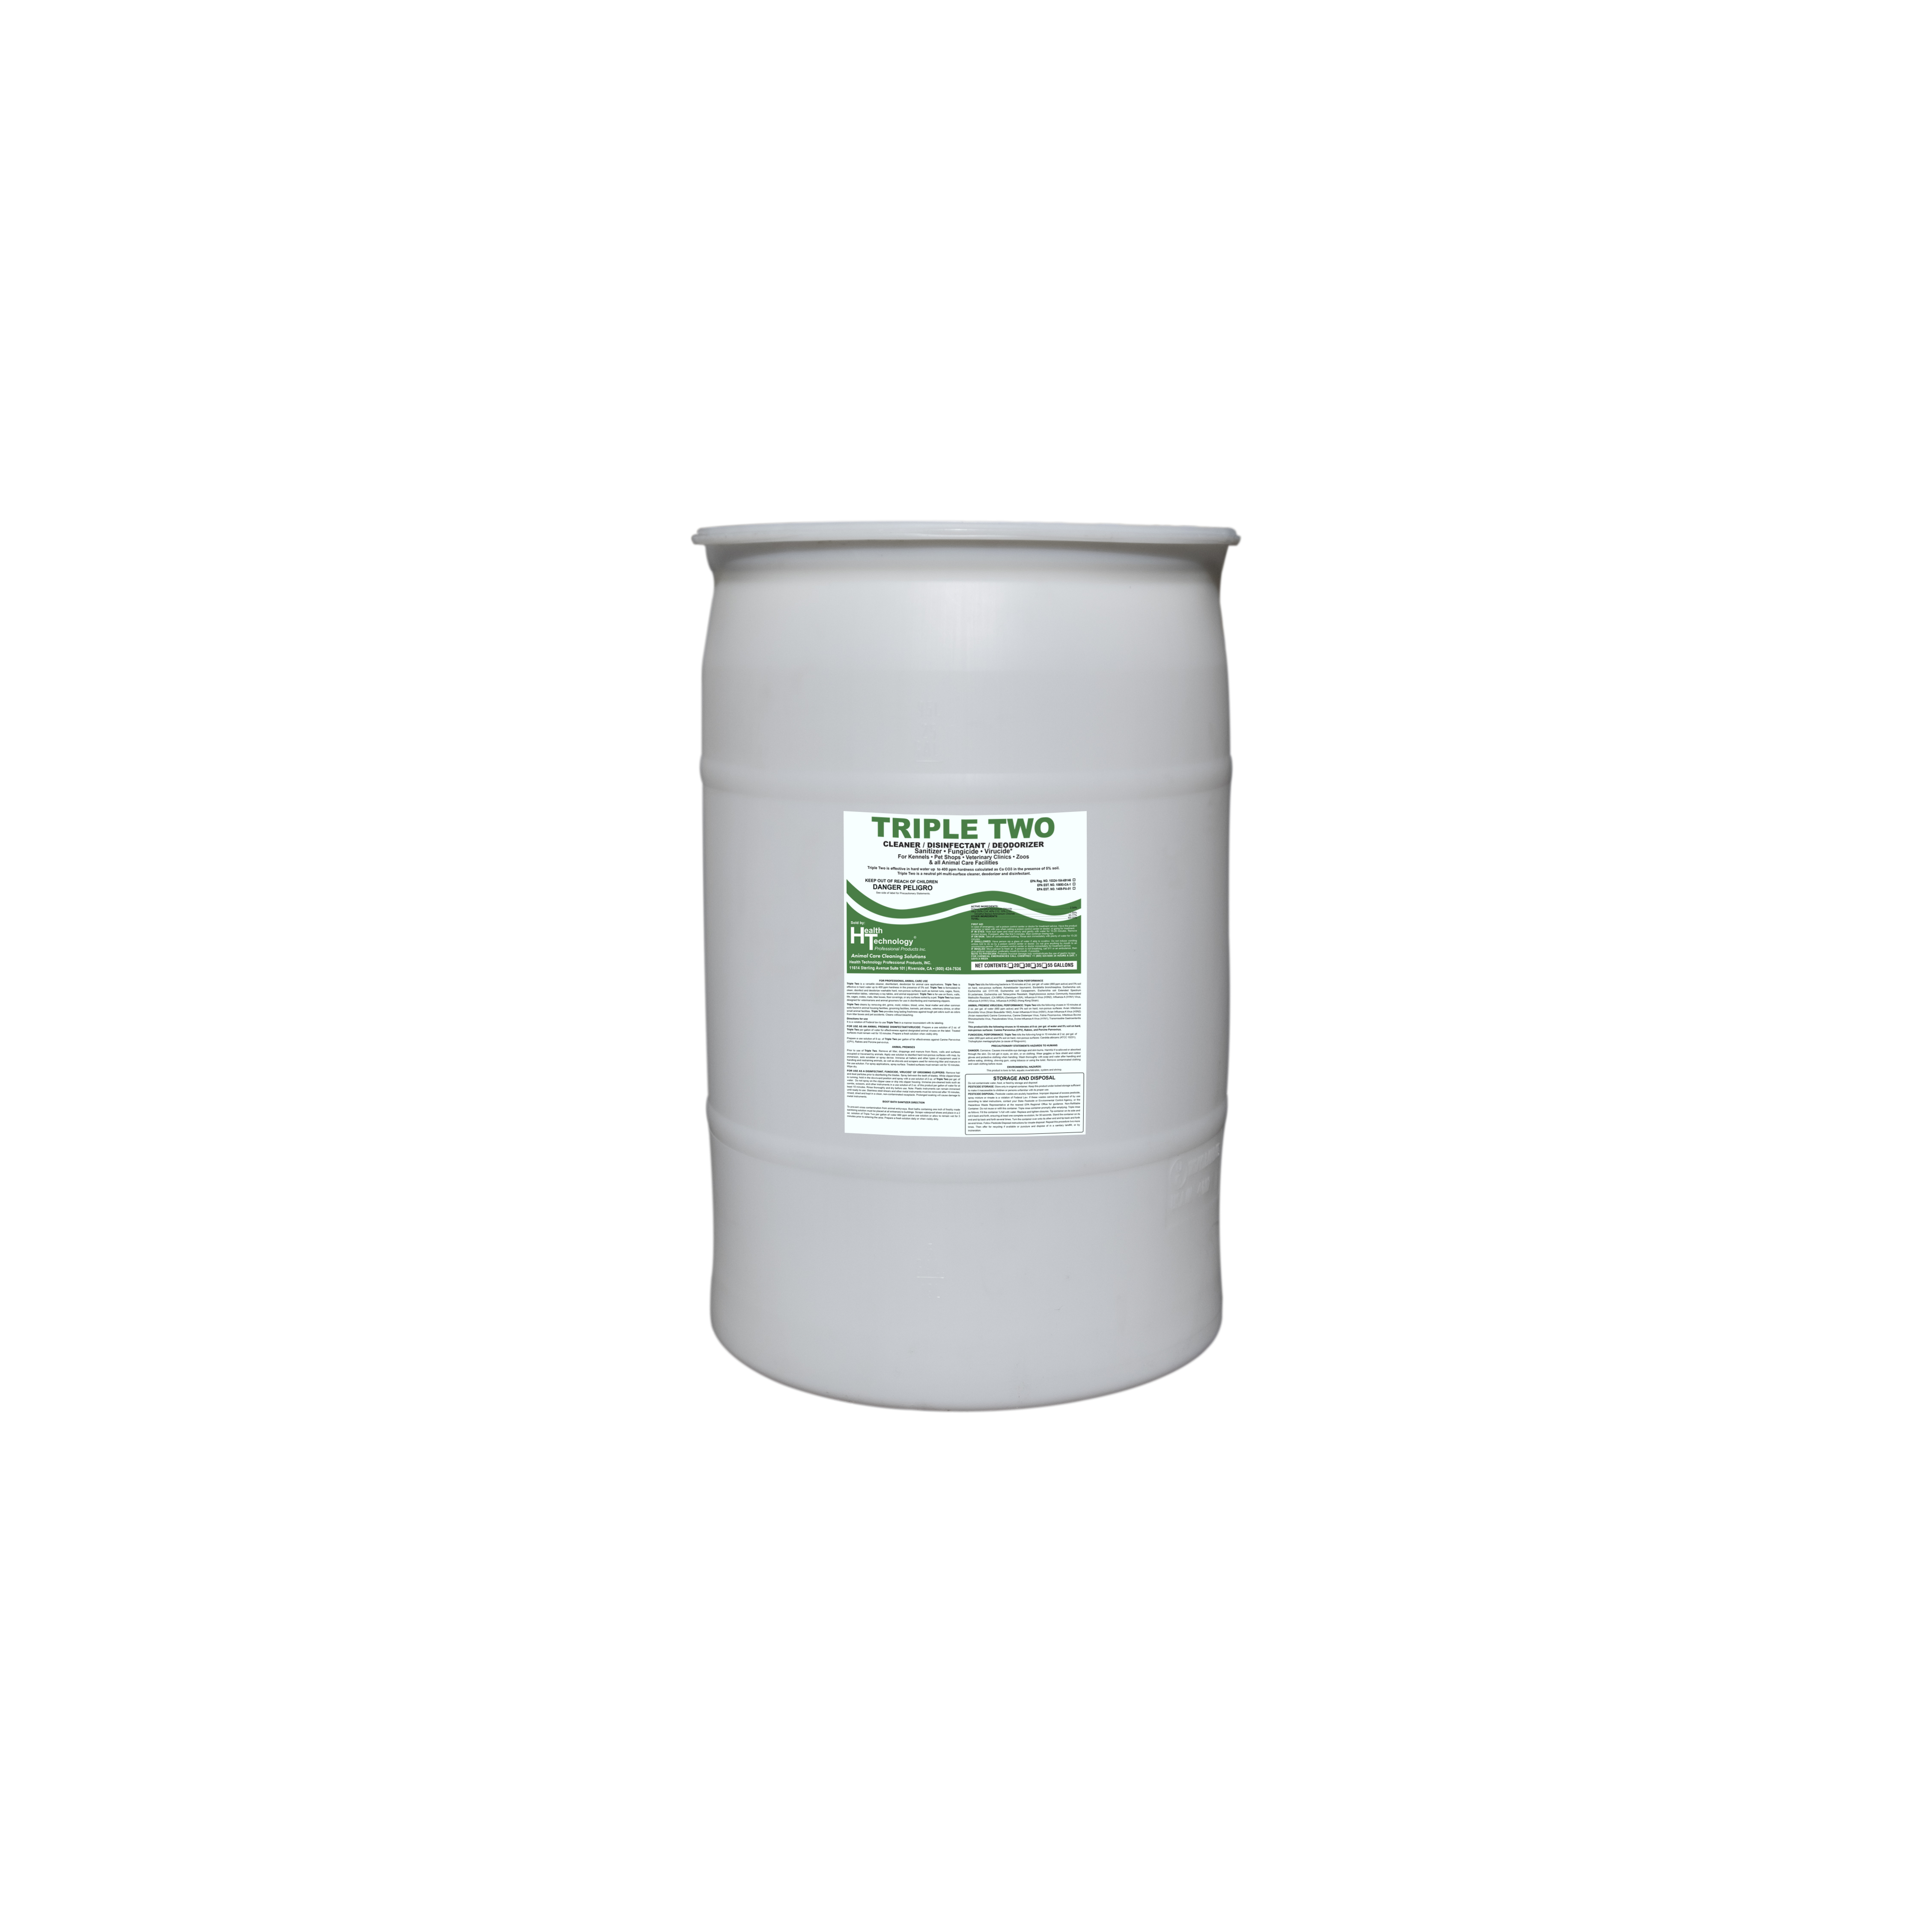 Triple Two Disinfectant Cleaner Deodorizer 30 Gallon Drum